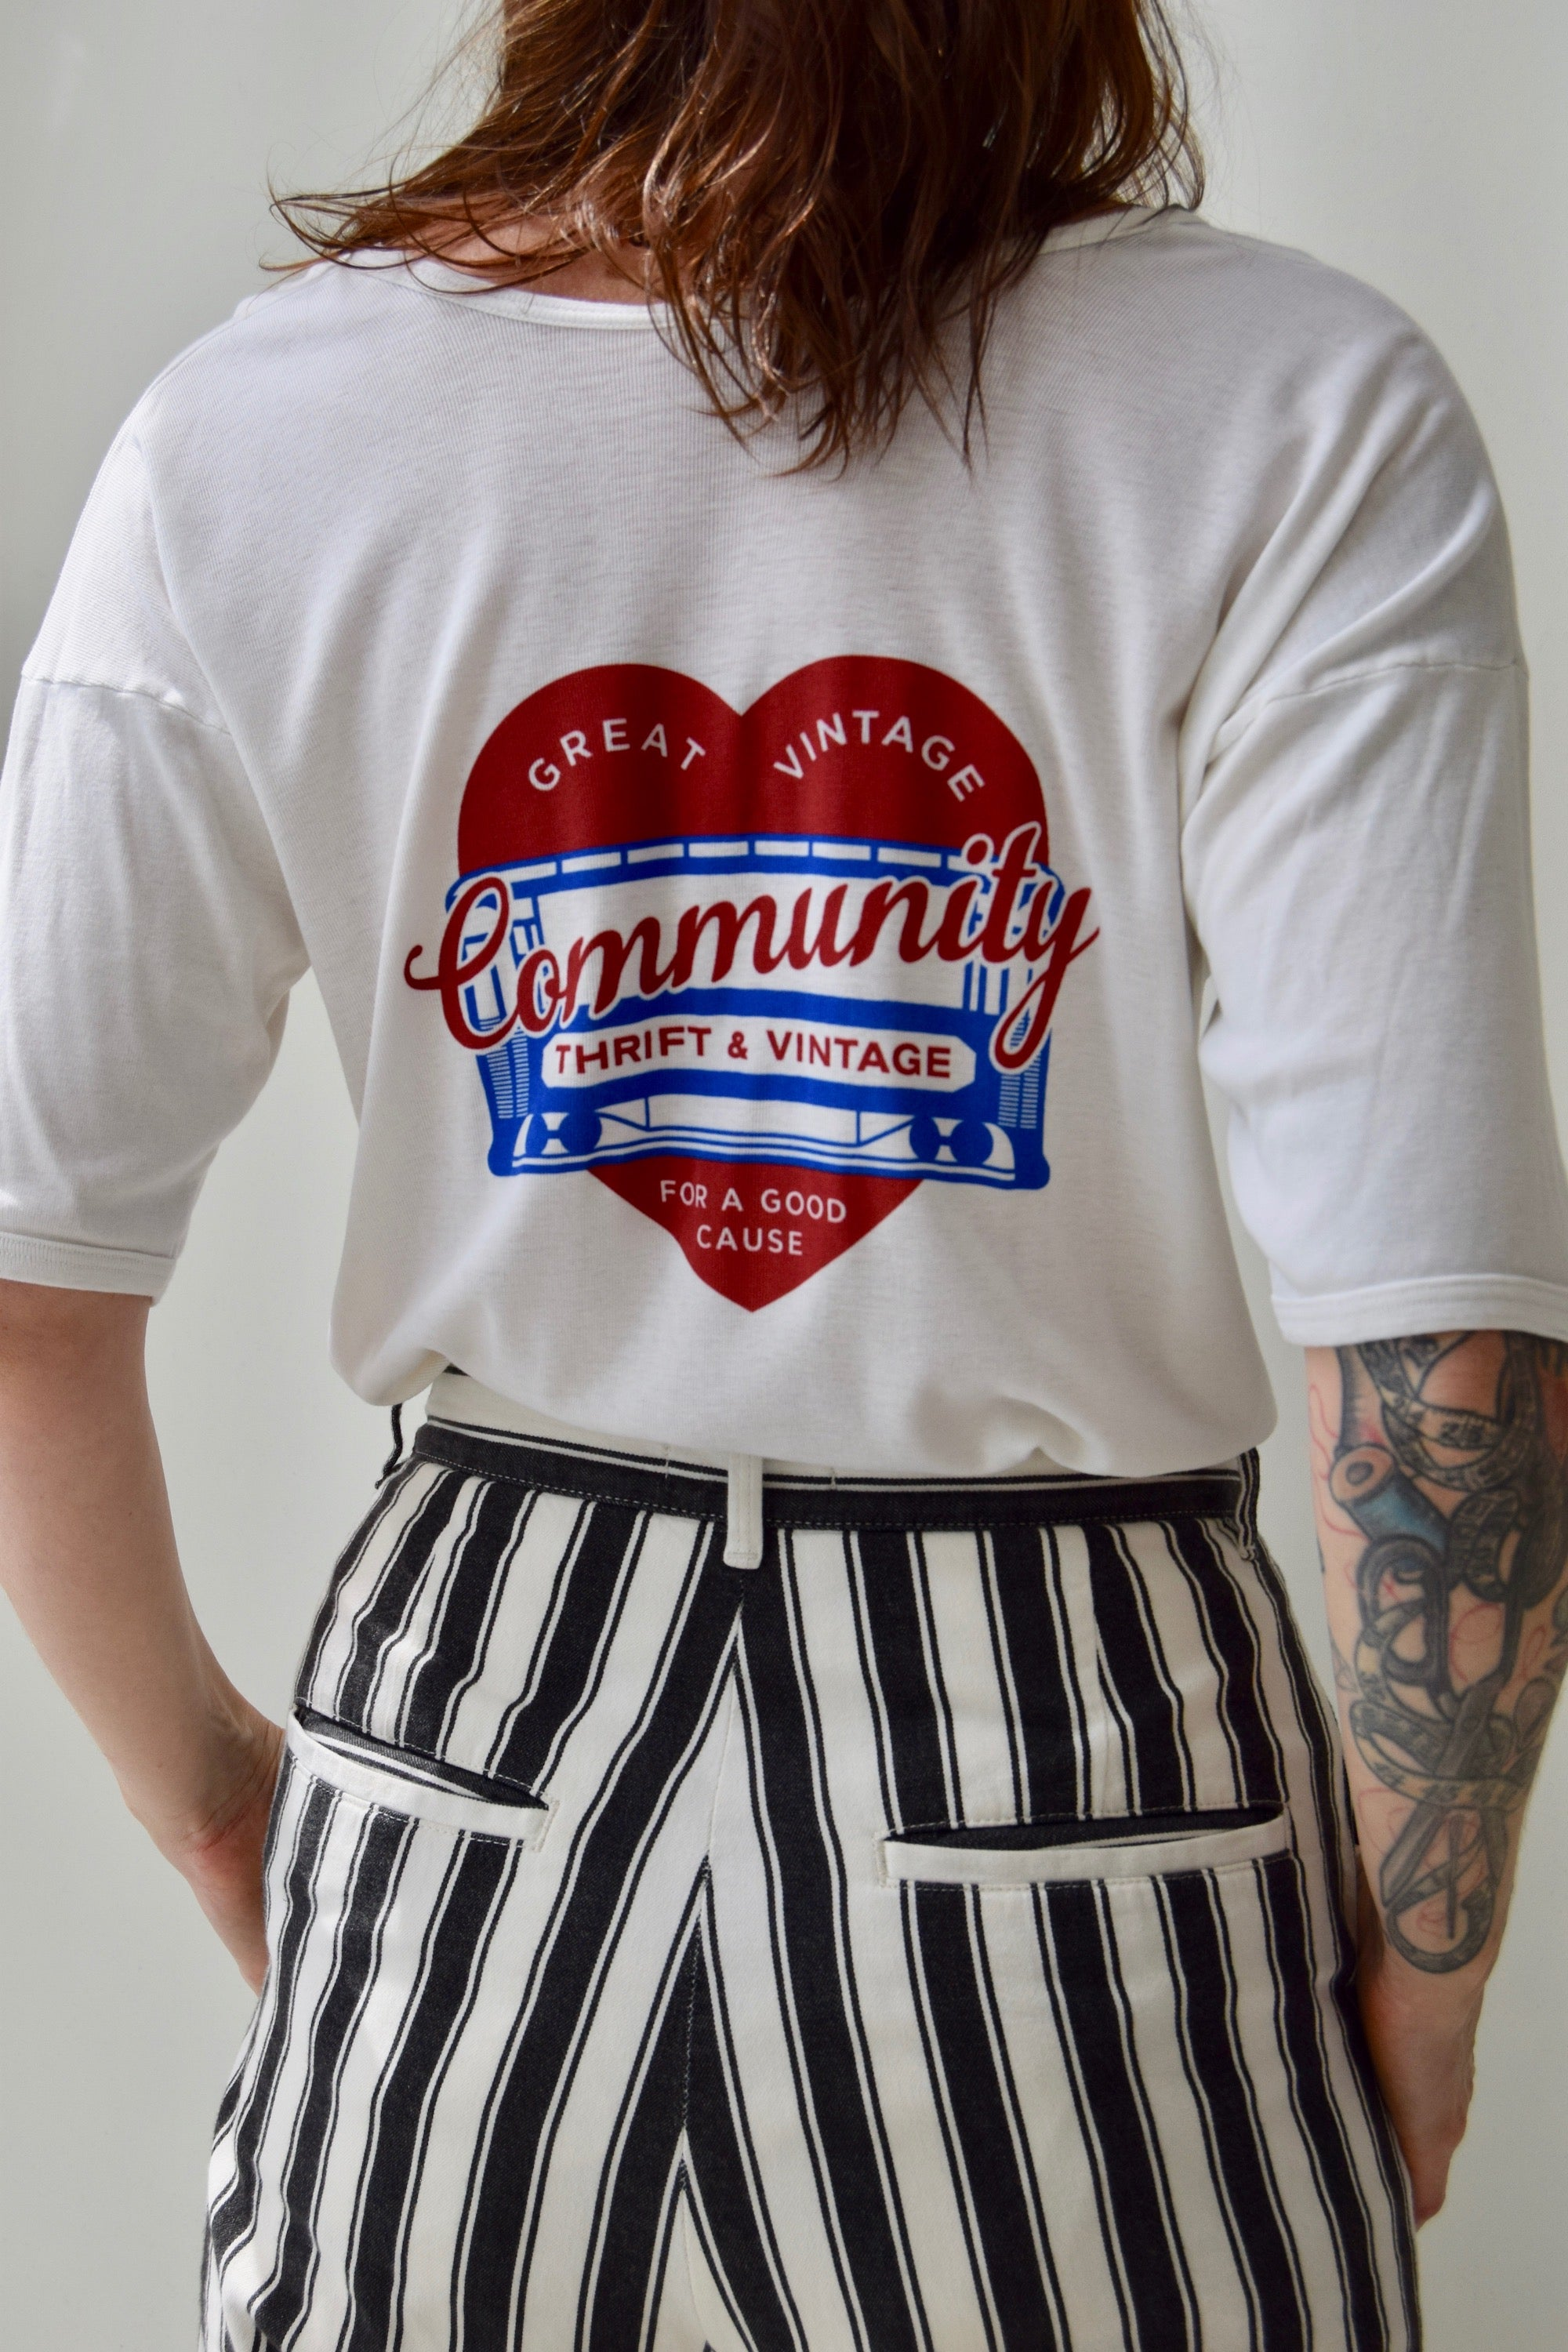 'Community' Thermal T-Shirt